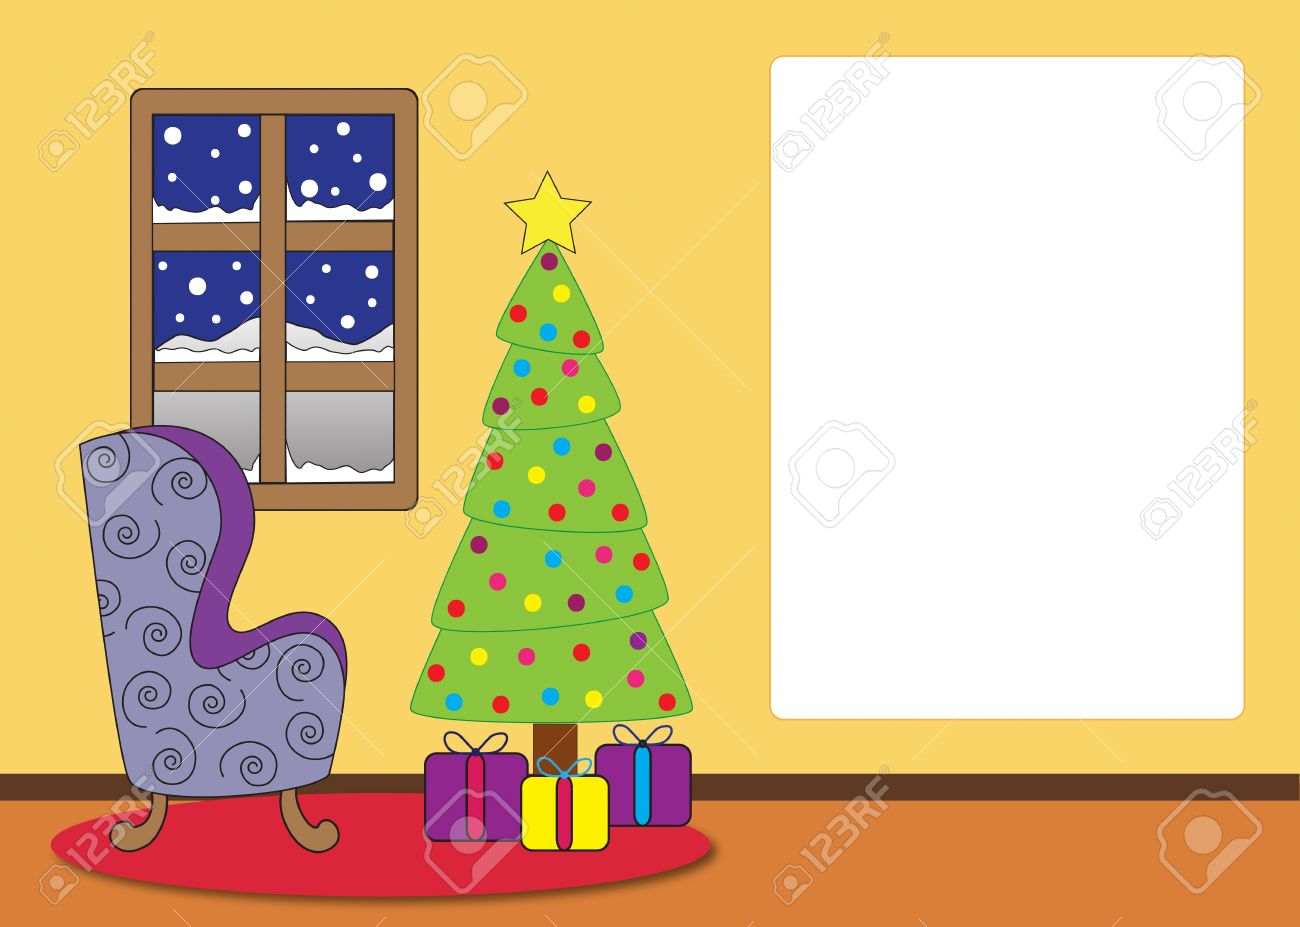 Living room with a window, lounge chair, christmas tree and presents. Card with text space. Stock Photo - 11297763